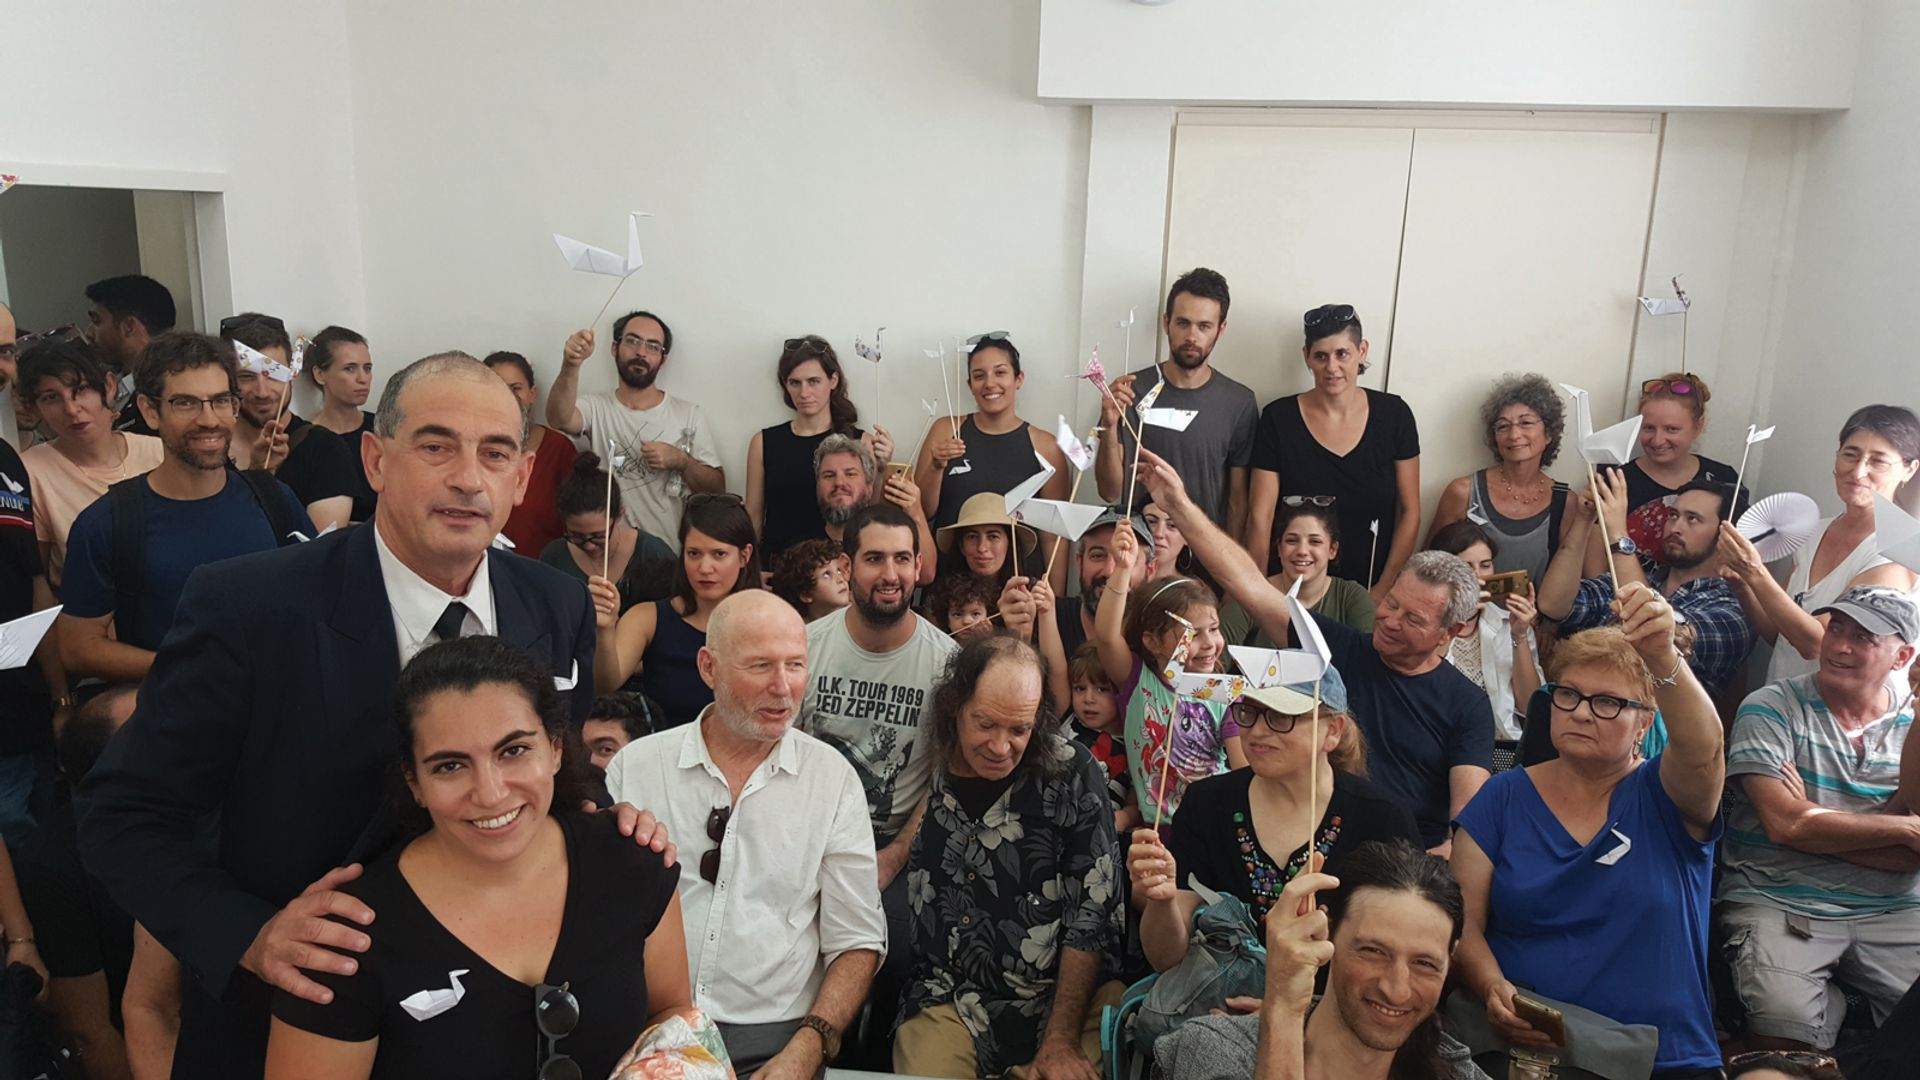 Lawyer Yossi Havilio and Barbur Gallery's supporters, holding swans (barbur in Hebrew),at the court ruling on the gallery's eviction Eyal Sher